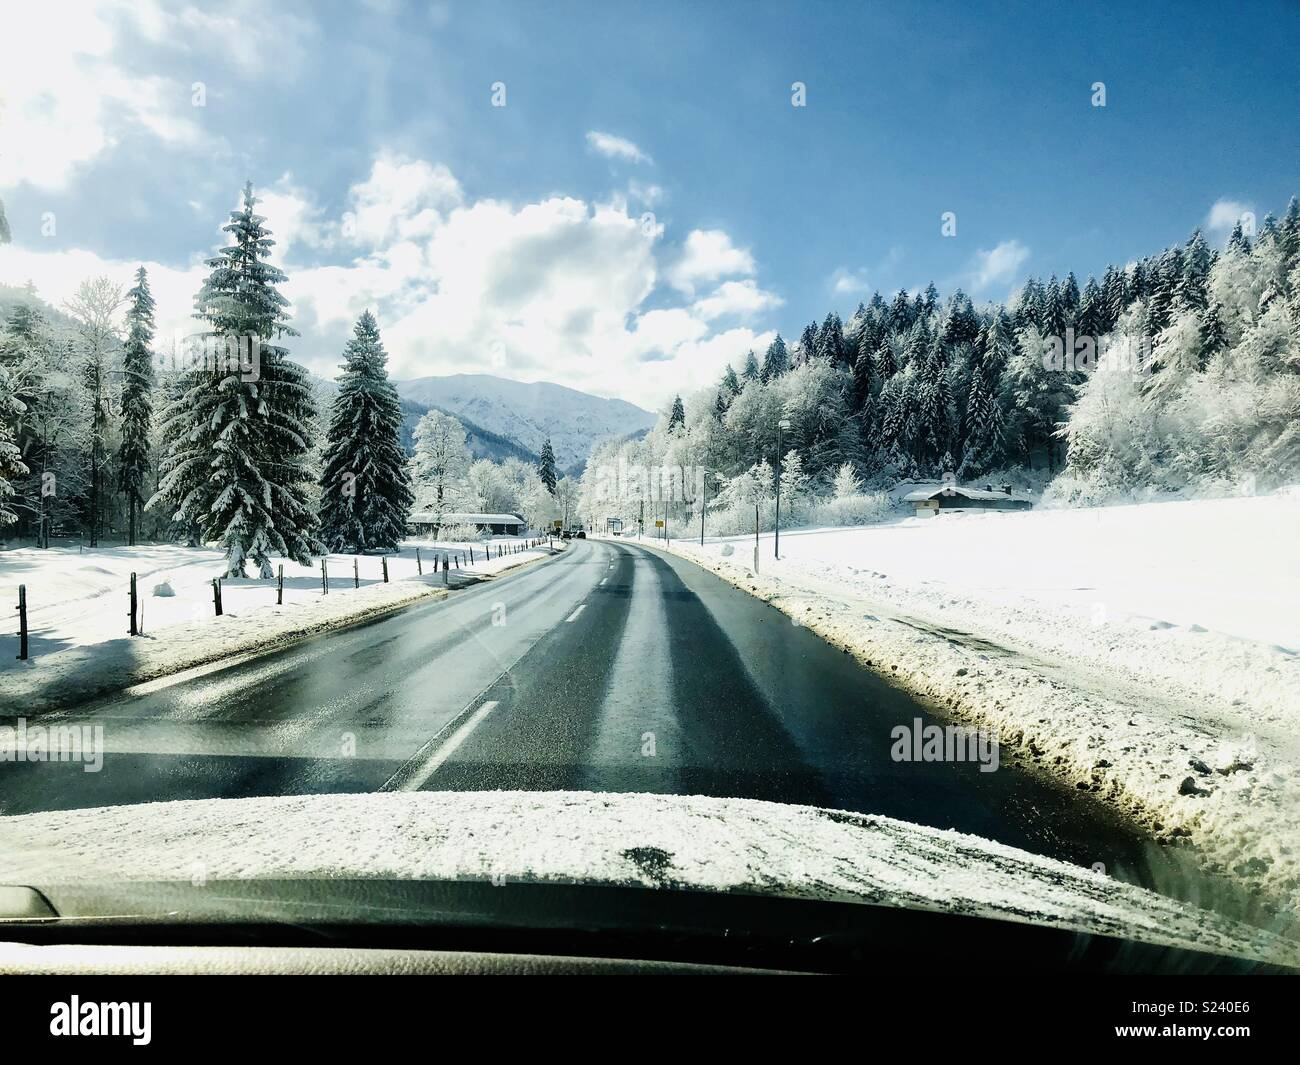 Road through Winter Wonderland with snowcovered Trees - Stock Image